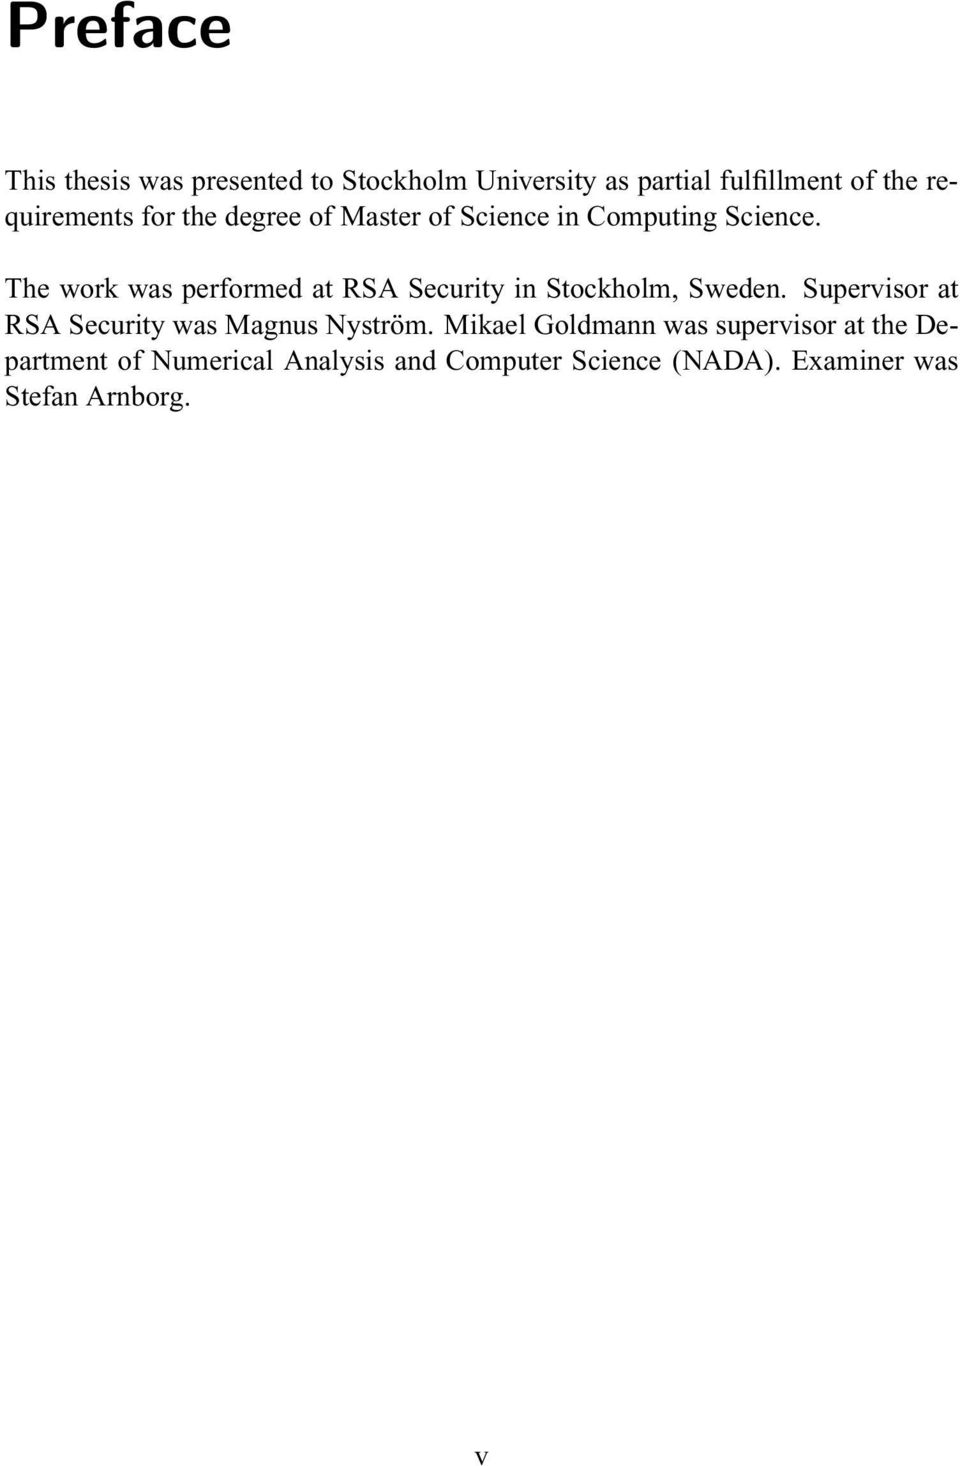 The work was performed at RSA Security in Stockholm, Sweden.